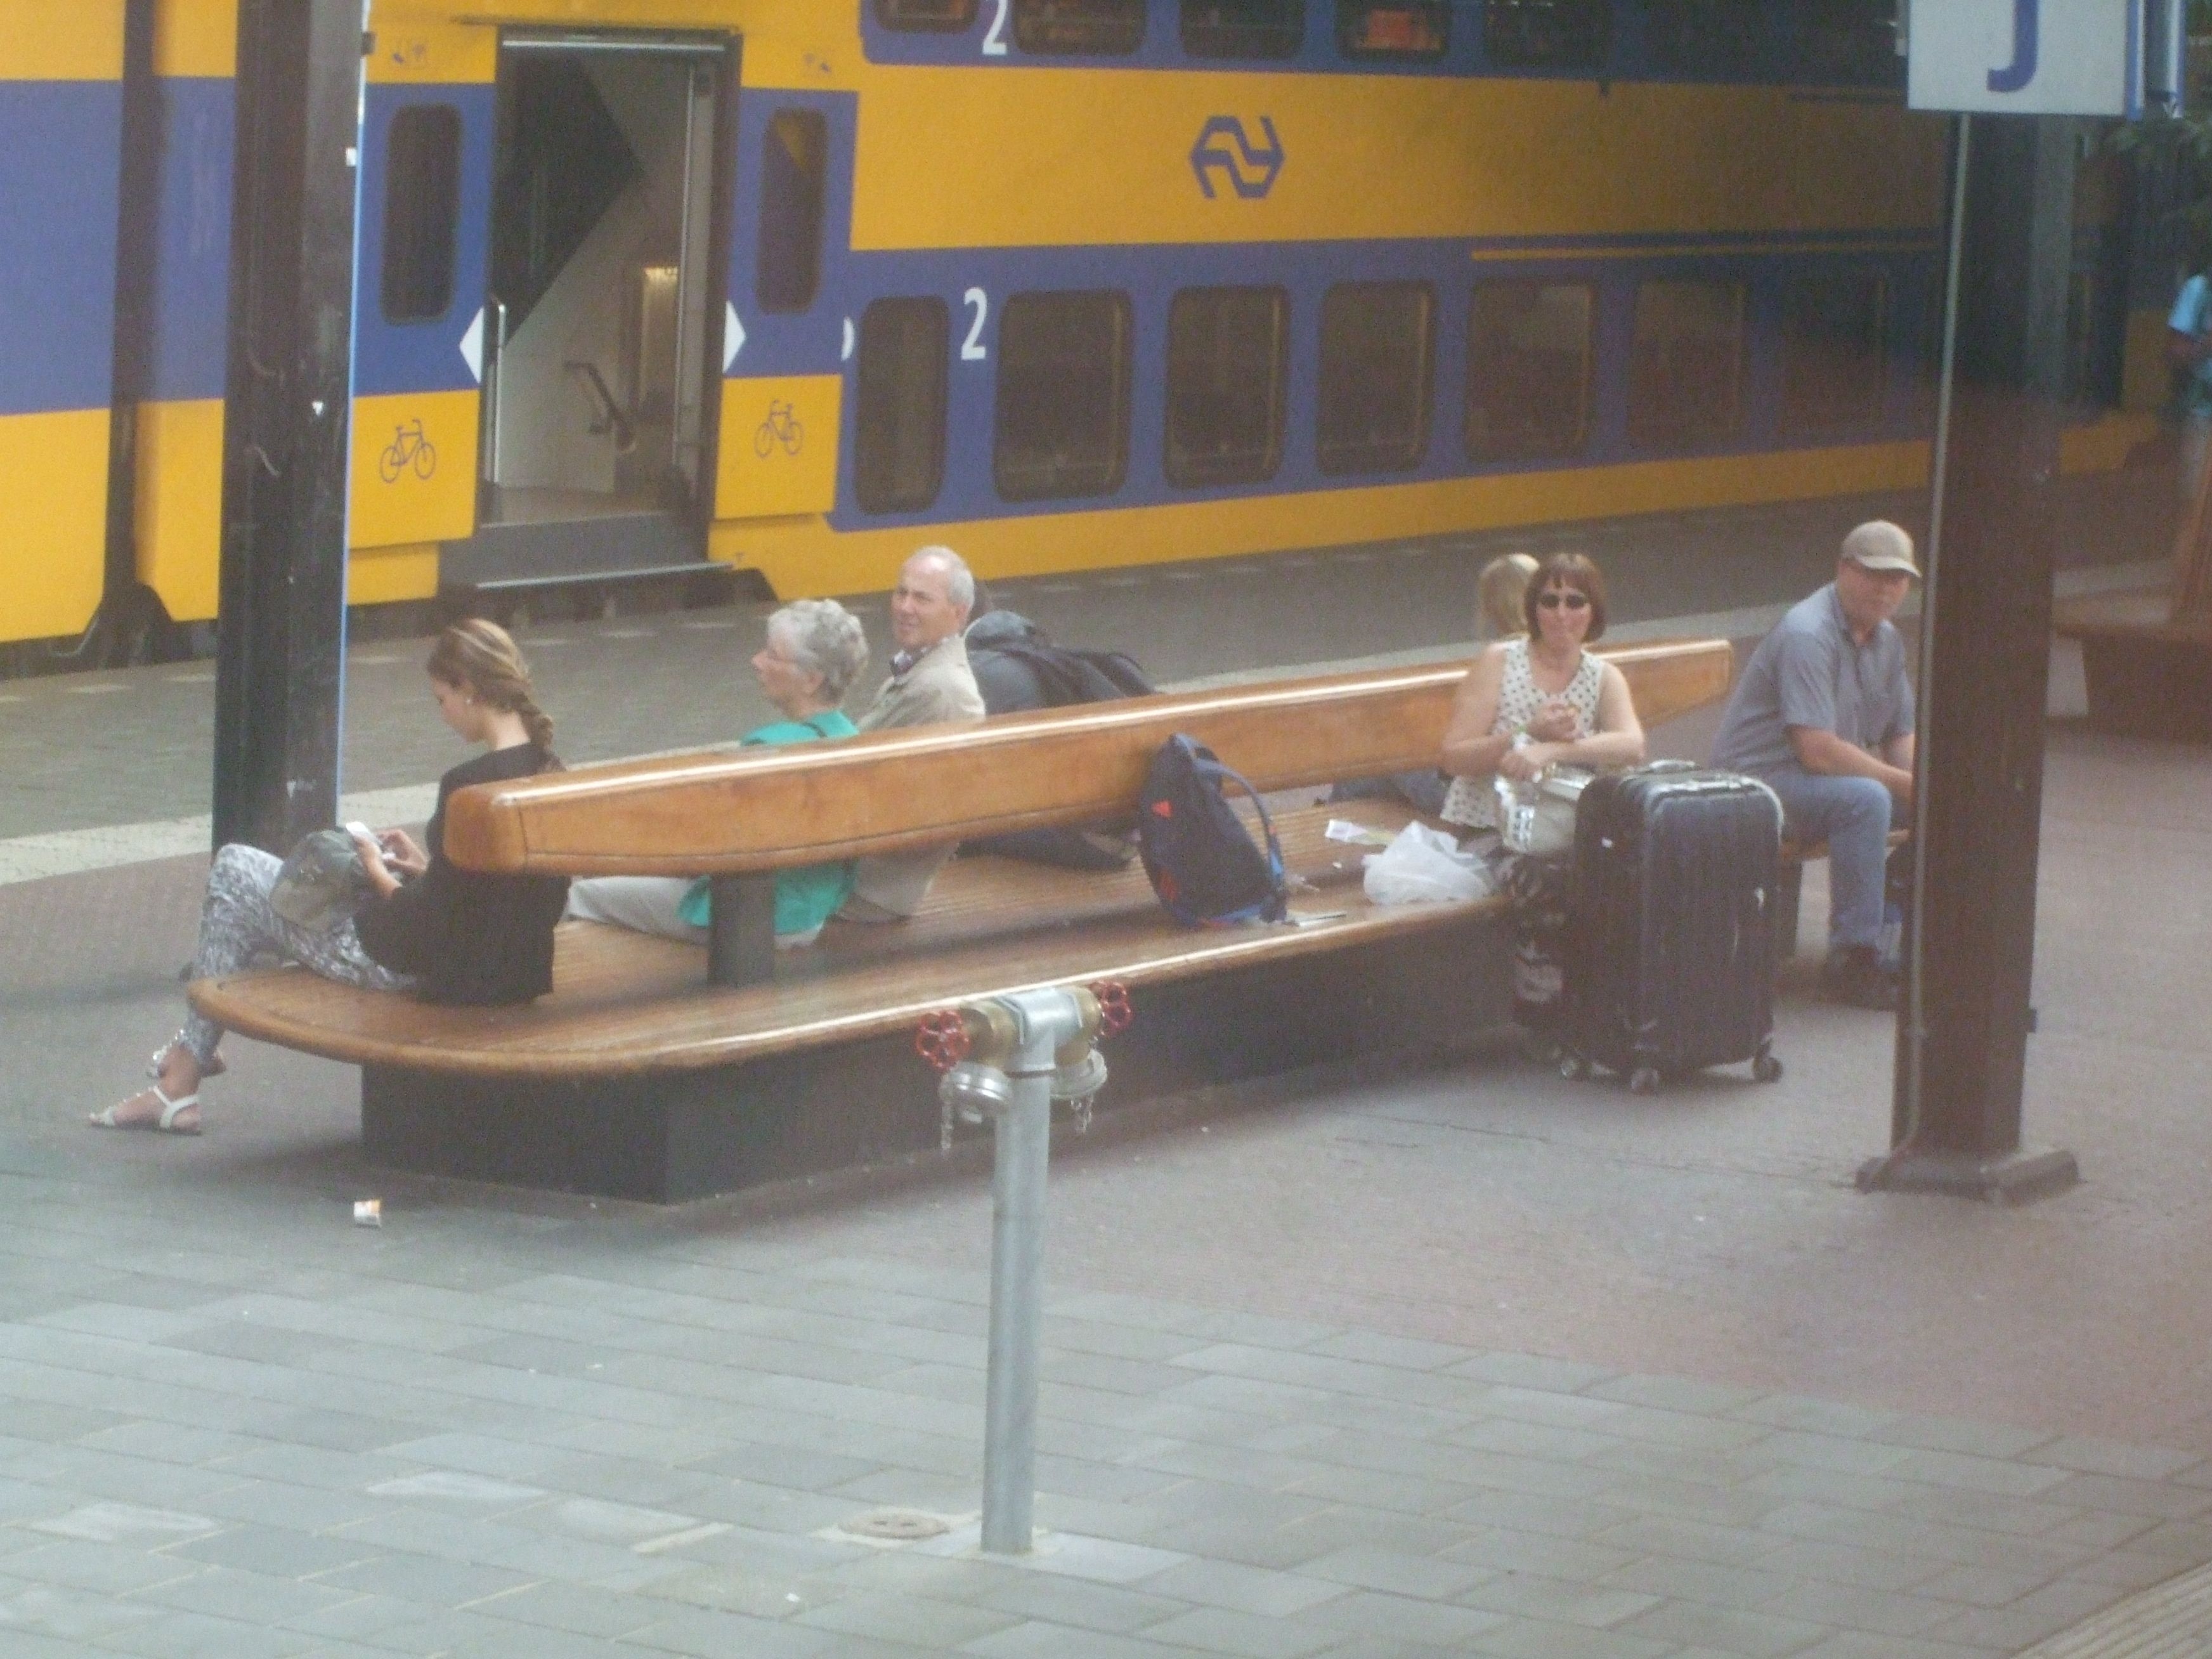 double seatbench on railstation Eindhoven